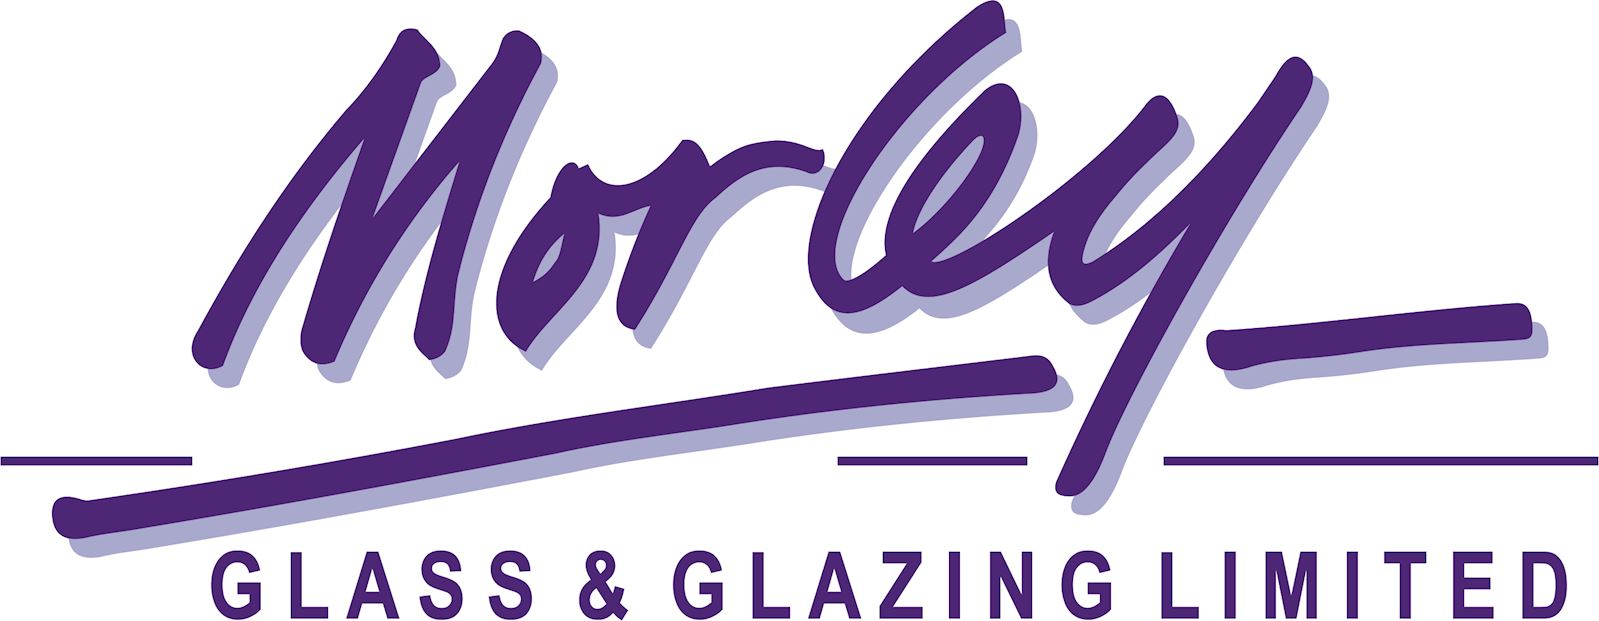 Morley Glass and Glazing